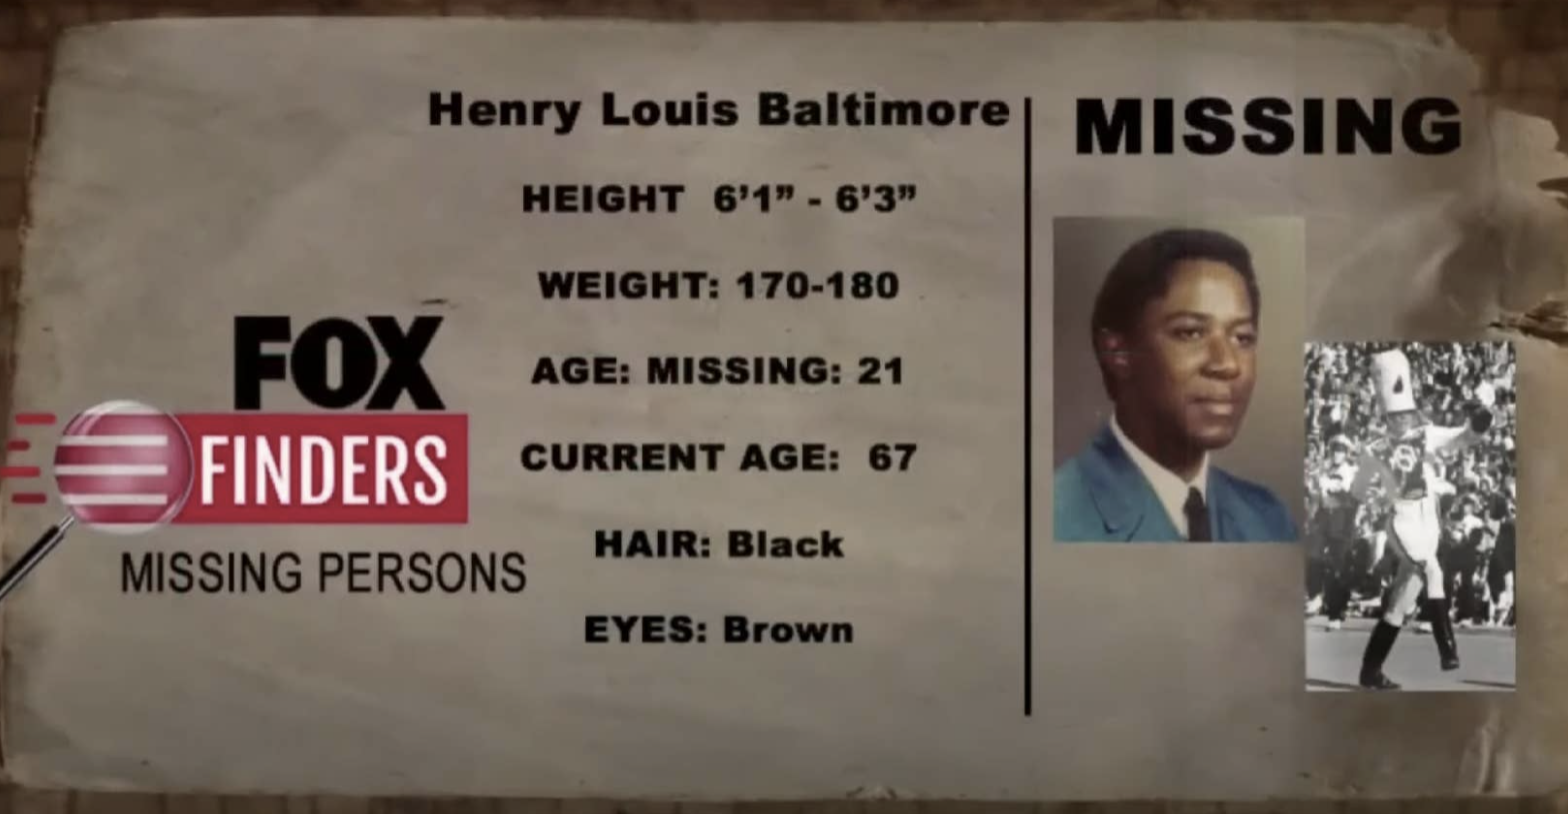 """a """"Fox Finders"""" Missing Persons one-sheet with Henry's name, photo, and information"""